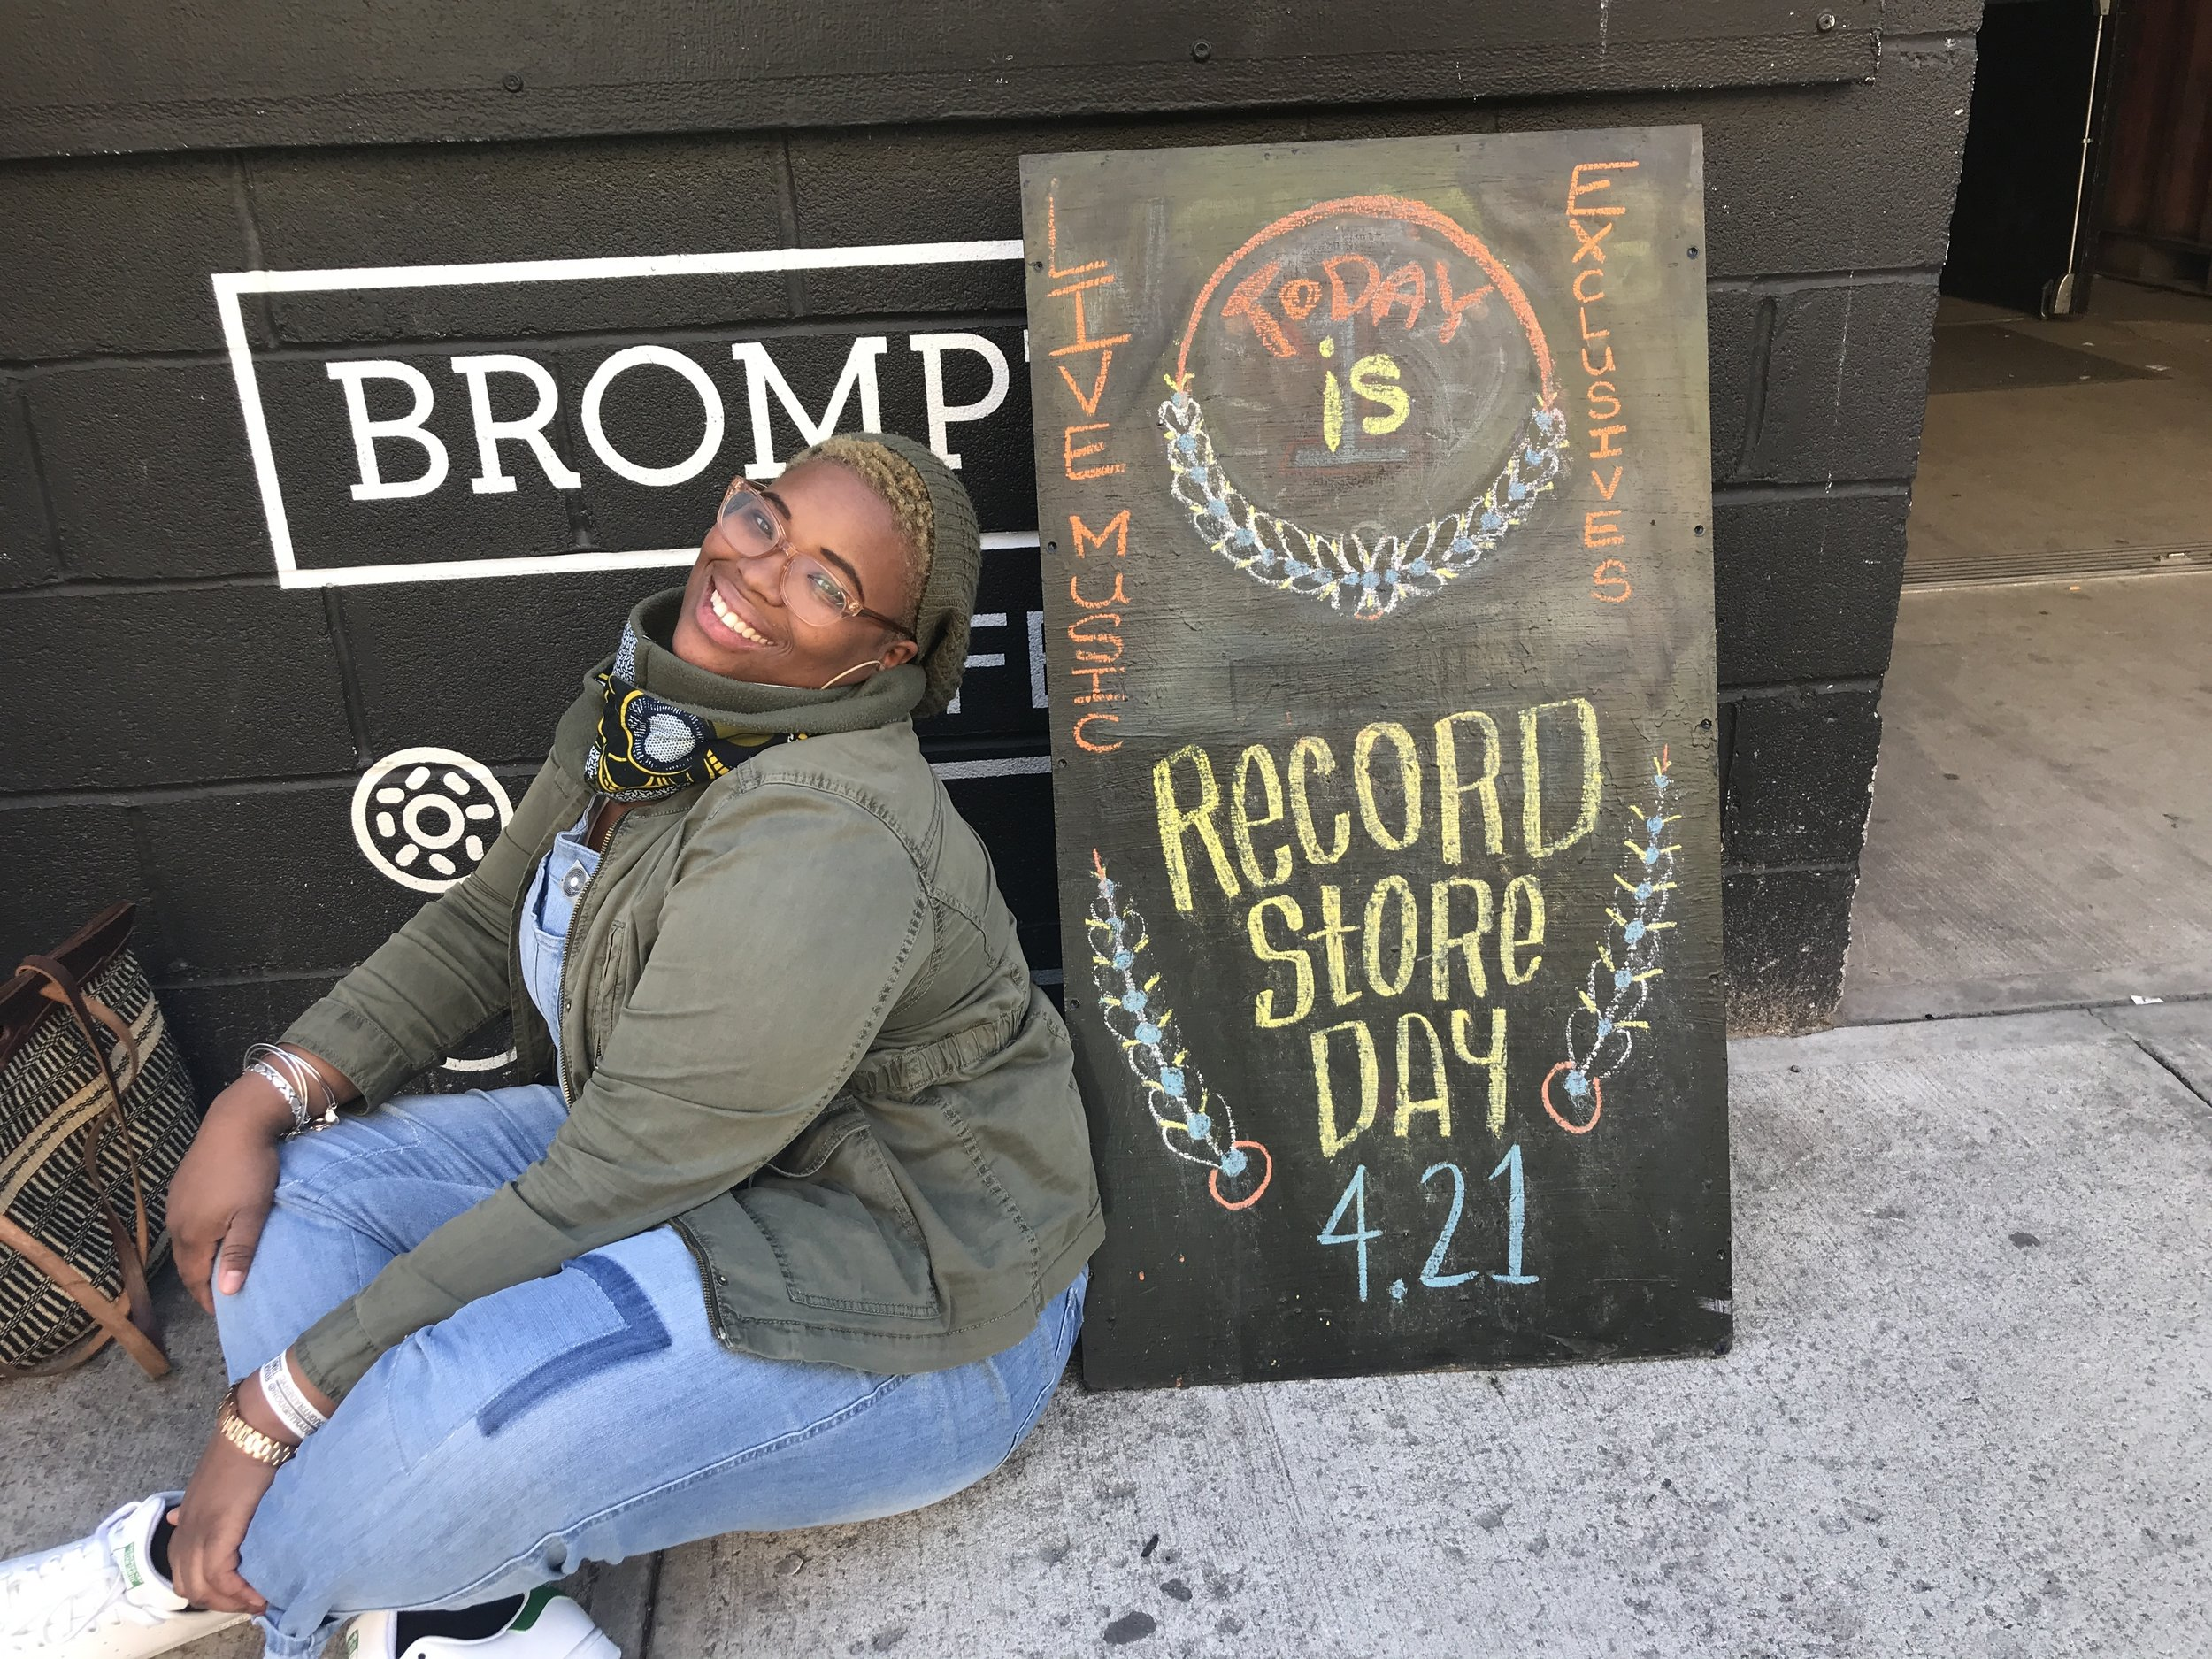 Crate Diggin-Record Store Day.JPG